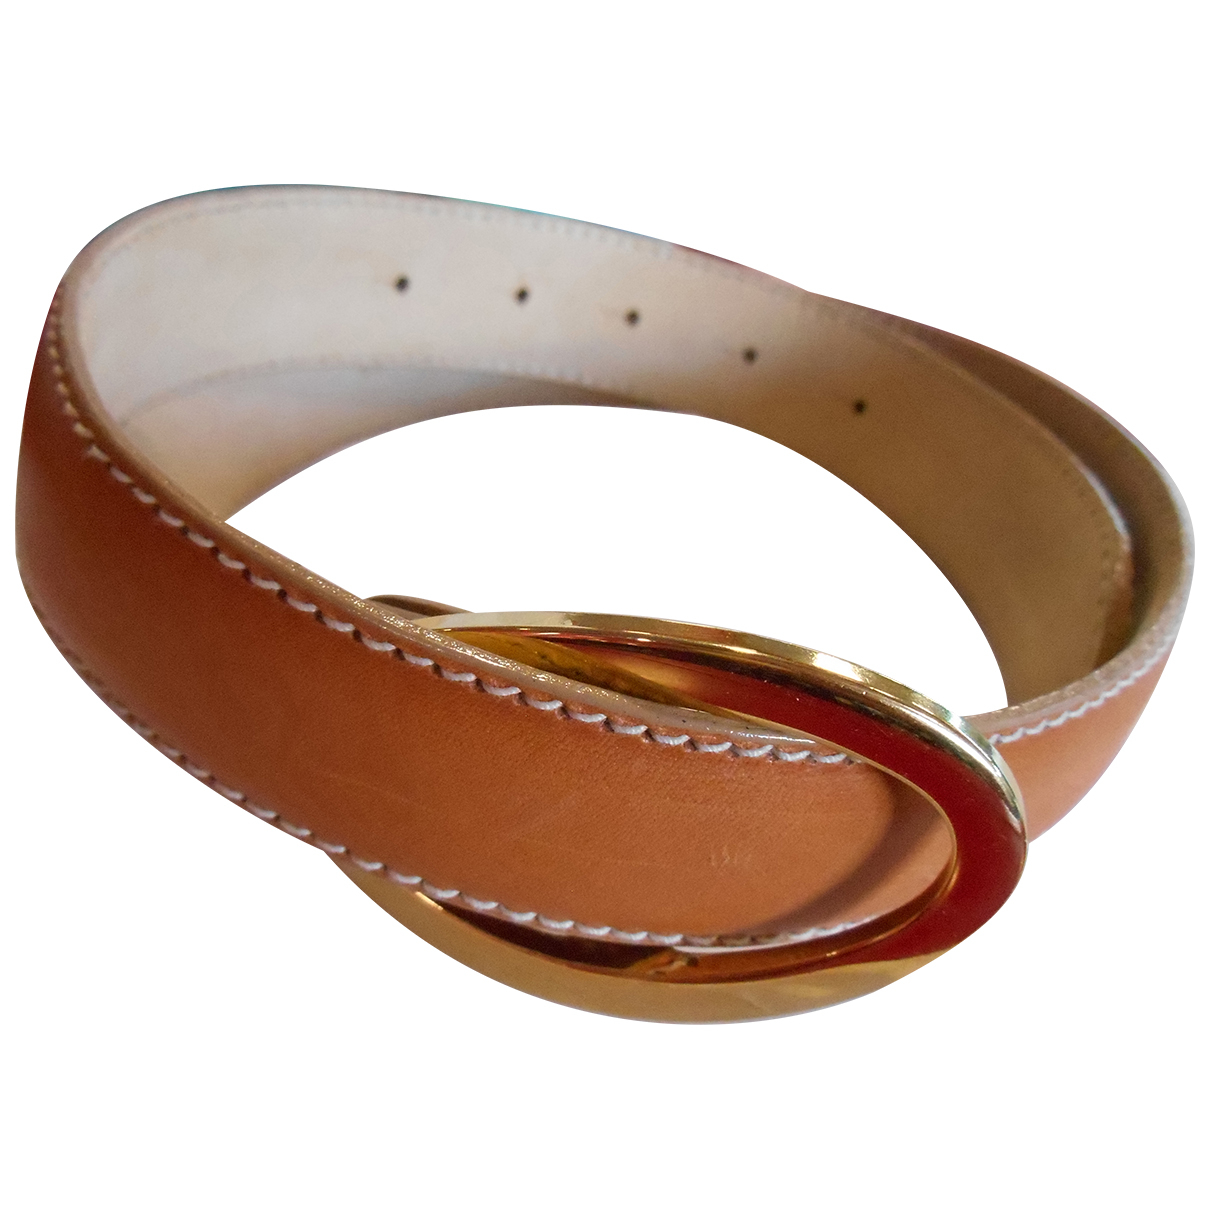 Longchamp \N Camel Leather belt for Women 85 cm